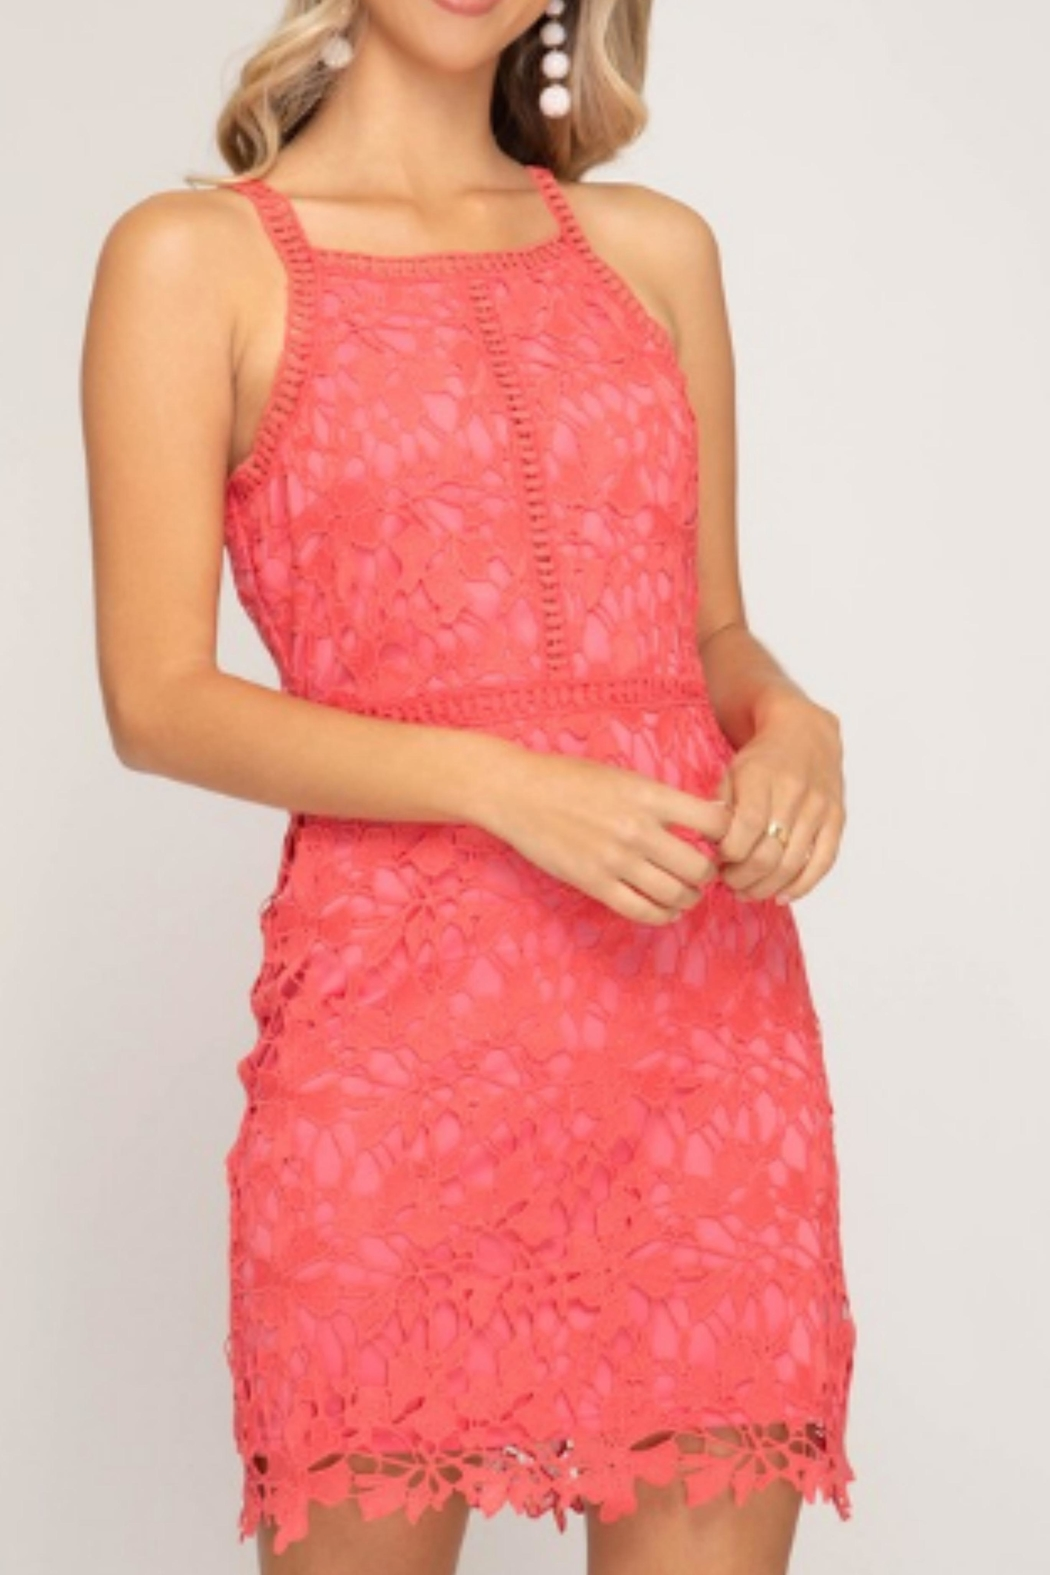 She + Sky Sleeveless Lace Dress - Main Image